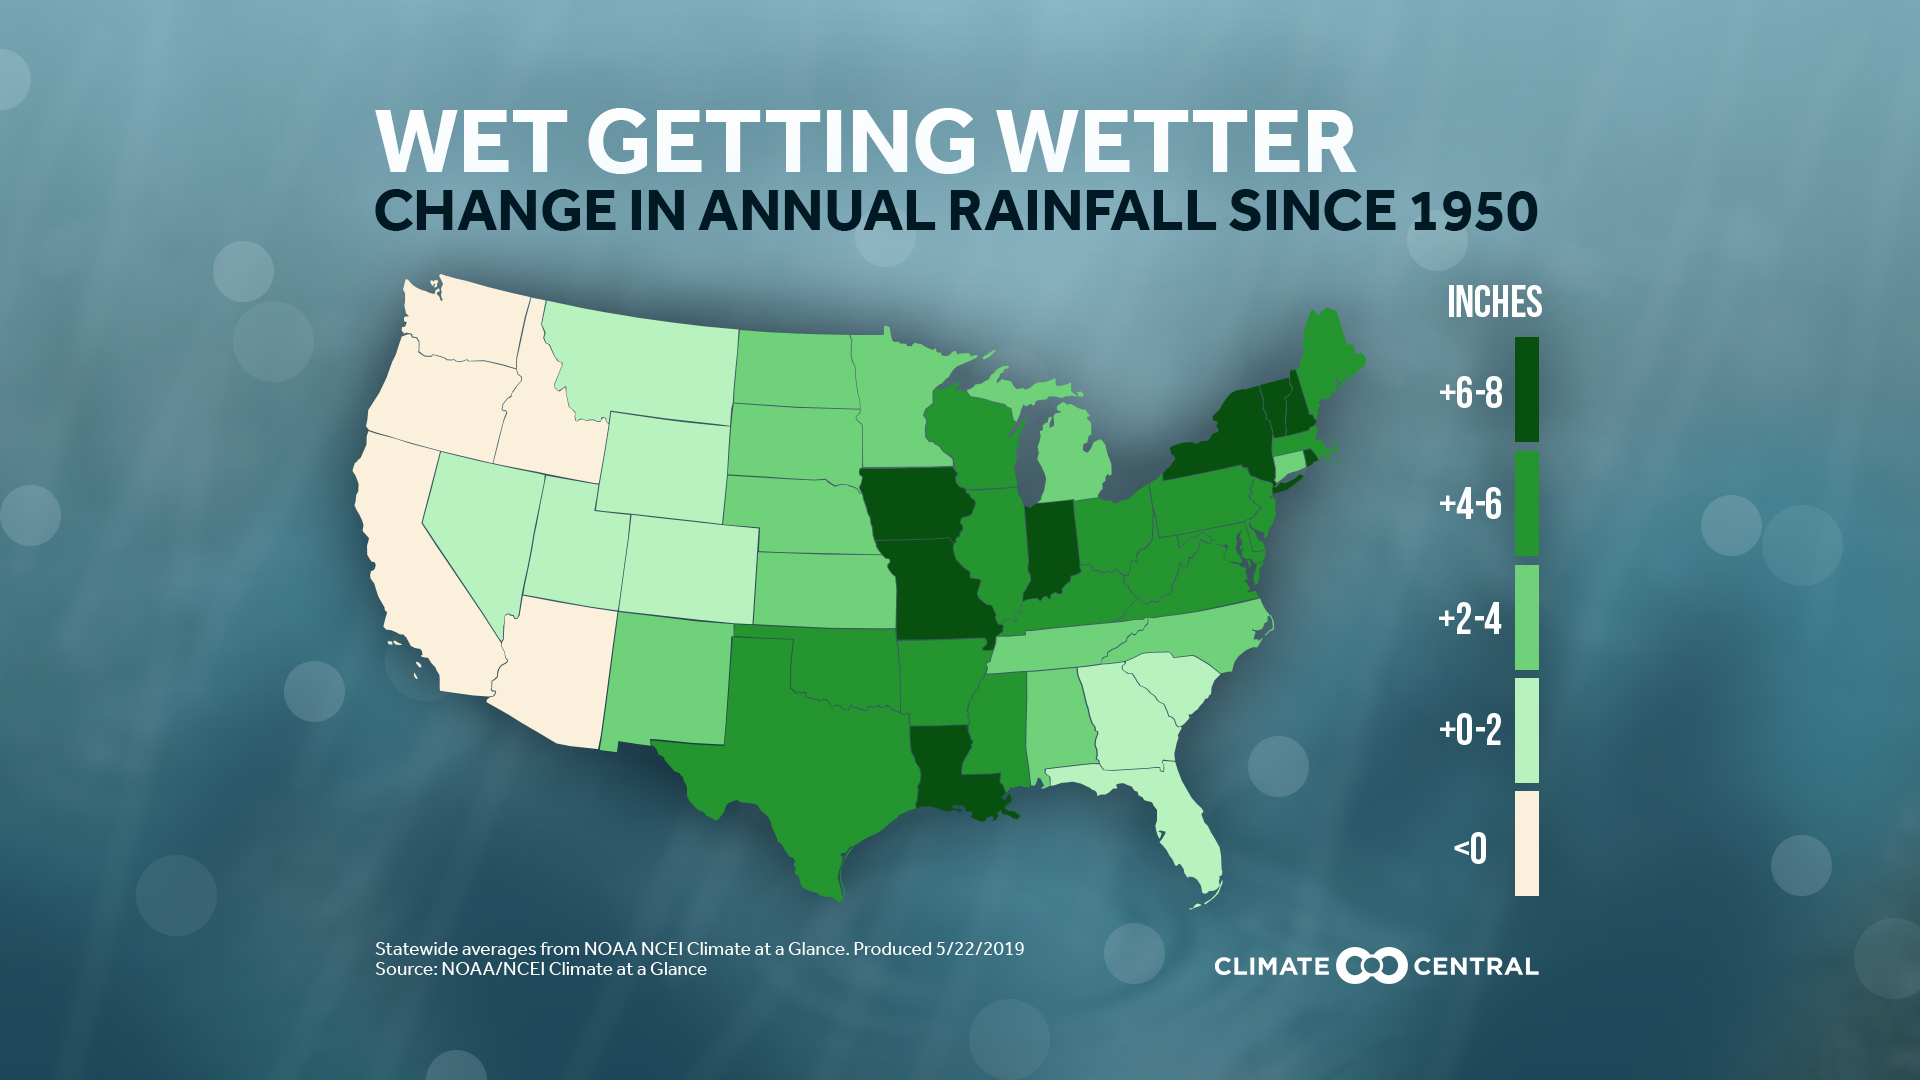 Annual Rainfall Increasing in Most U.S. States